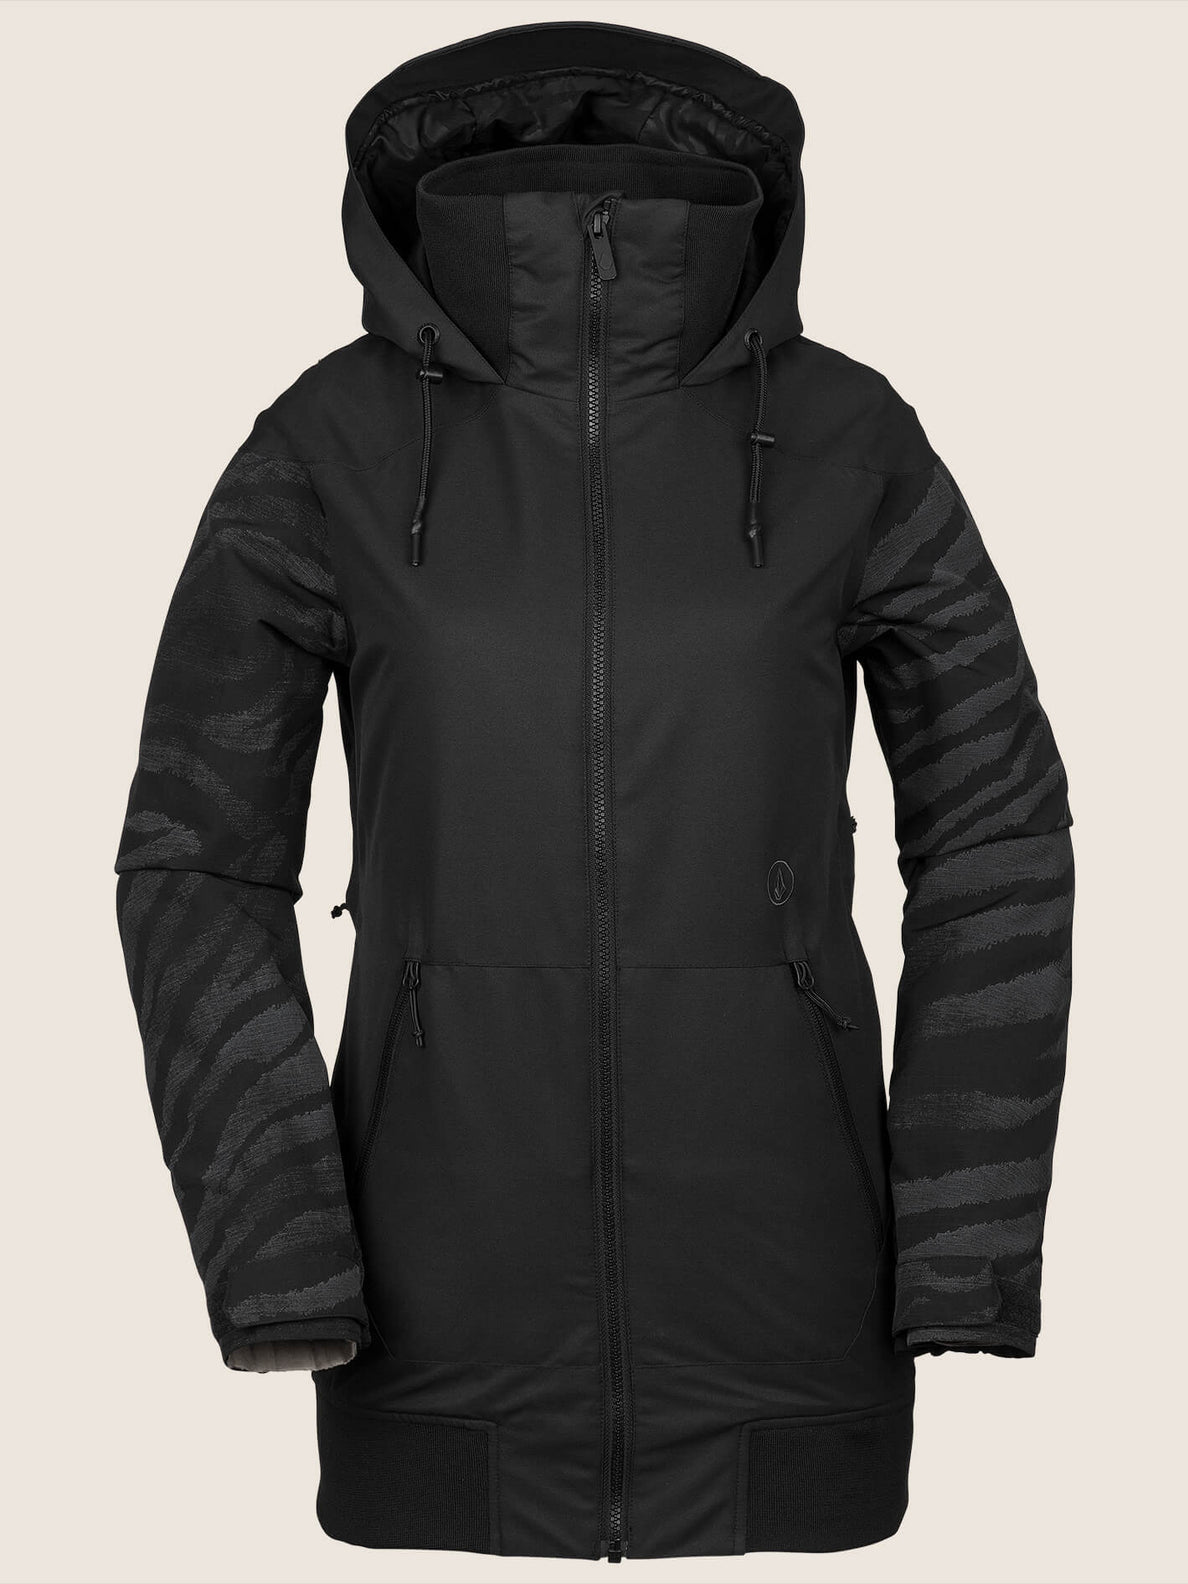 Meadow Insulated Jacket In Black, Front View